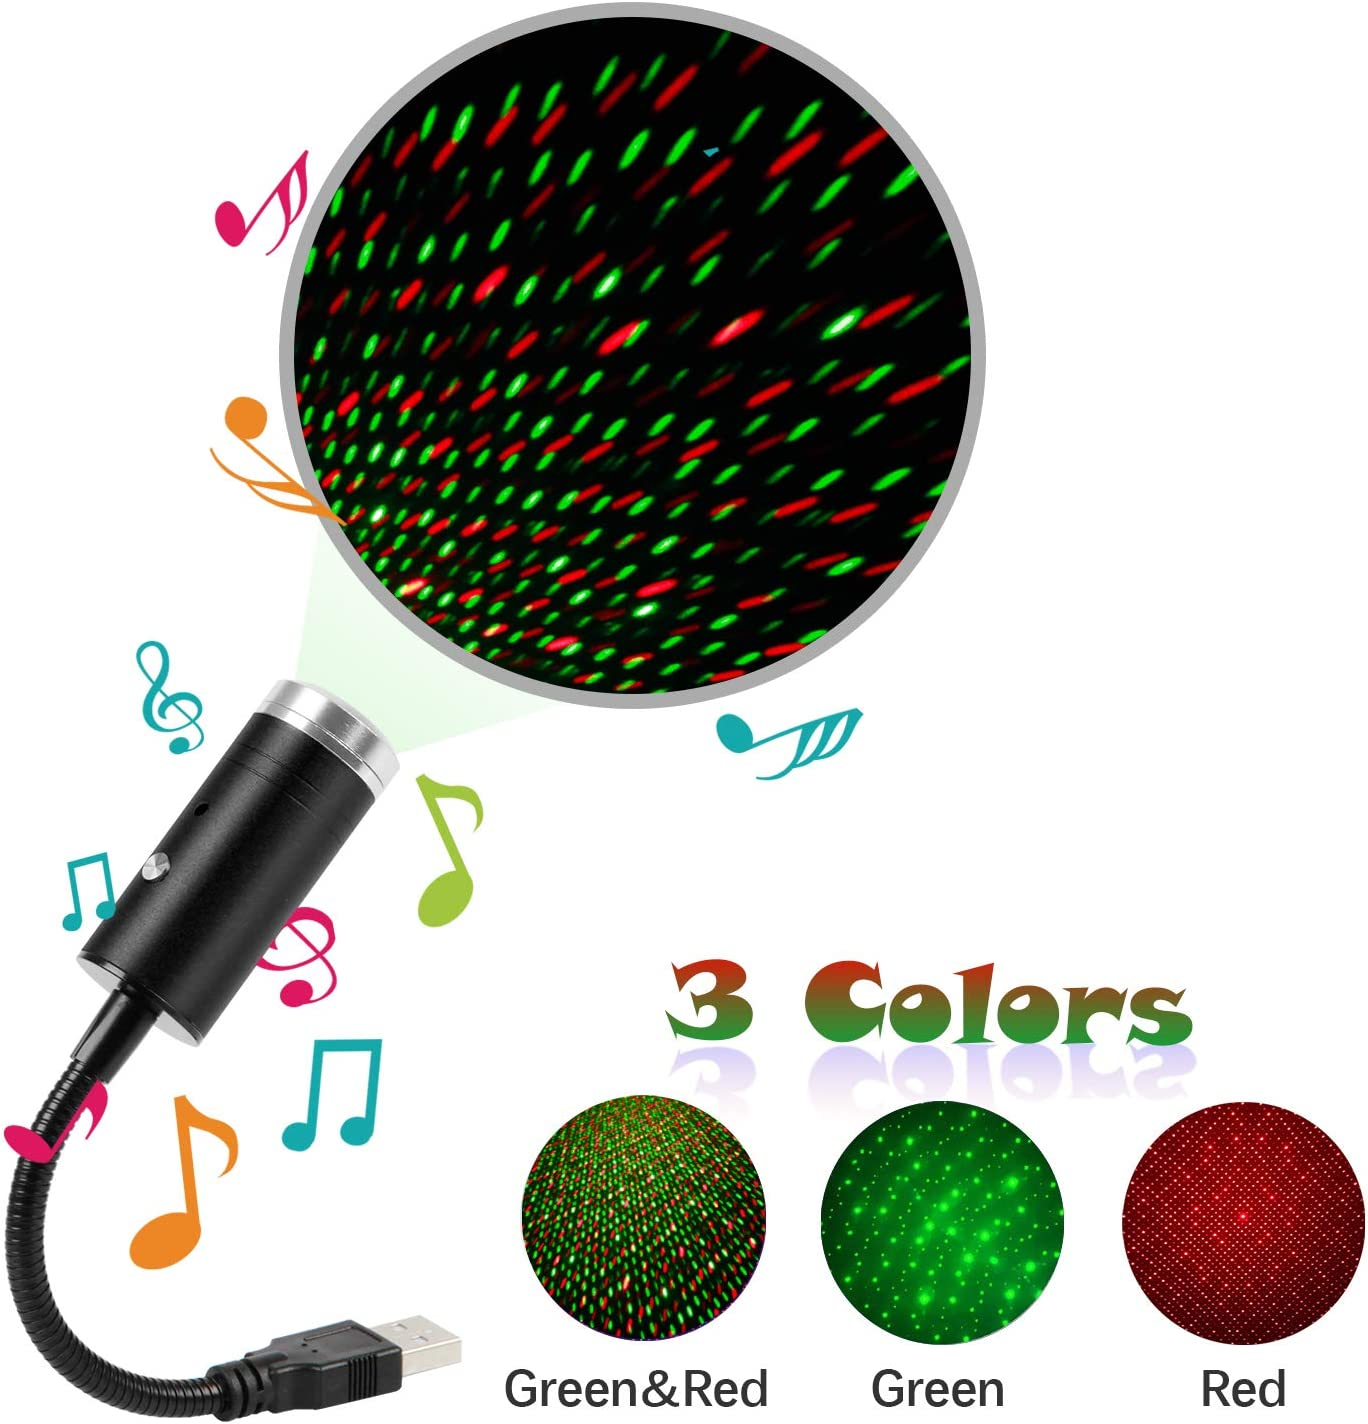 USB Star Light Sound Activated,3 Colors + 9 Lighting Effects,Romantic Car Ceiling Interior Light,Atmosphere Decorations for Car Interior,Ceiling, Bedroom, Party and More ( Green&Red )